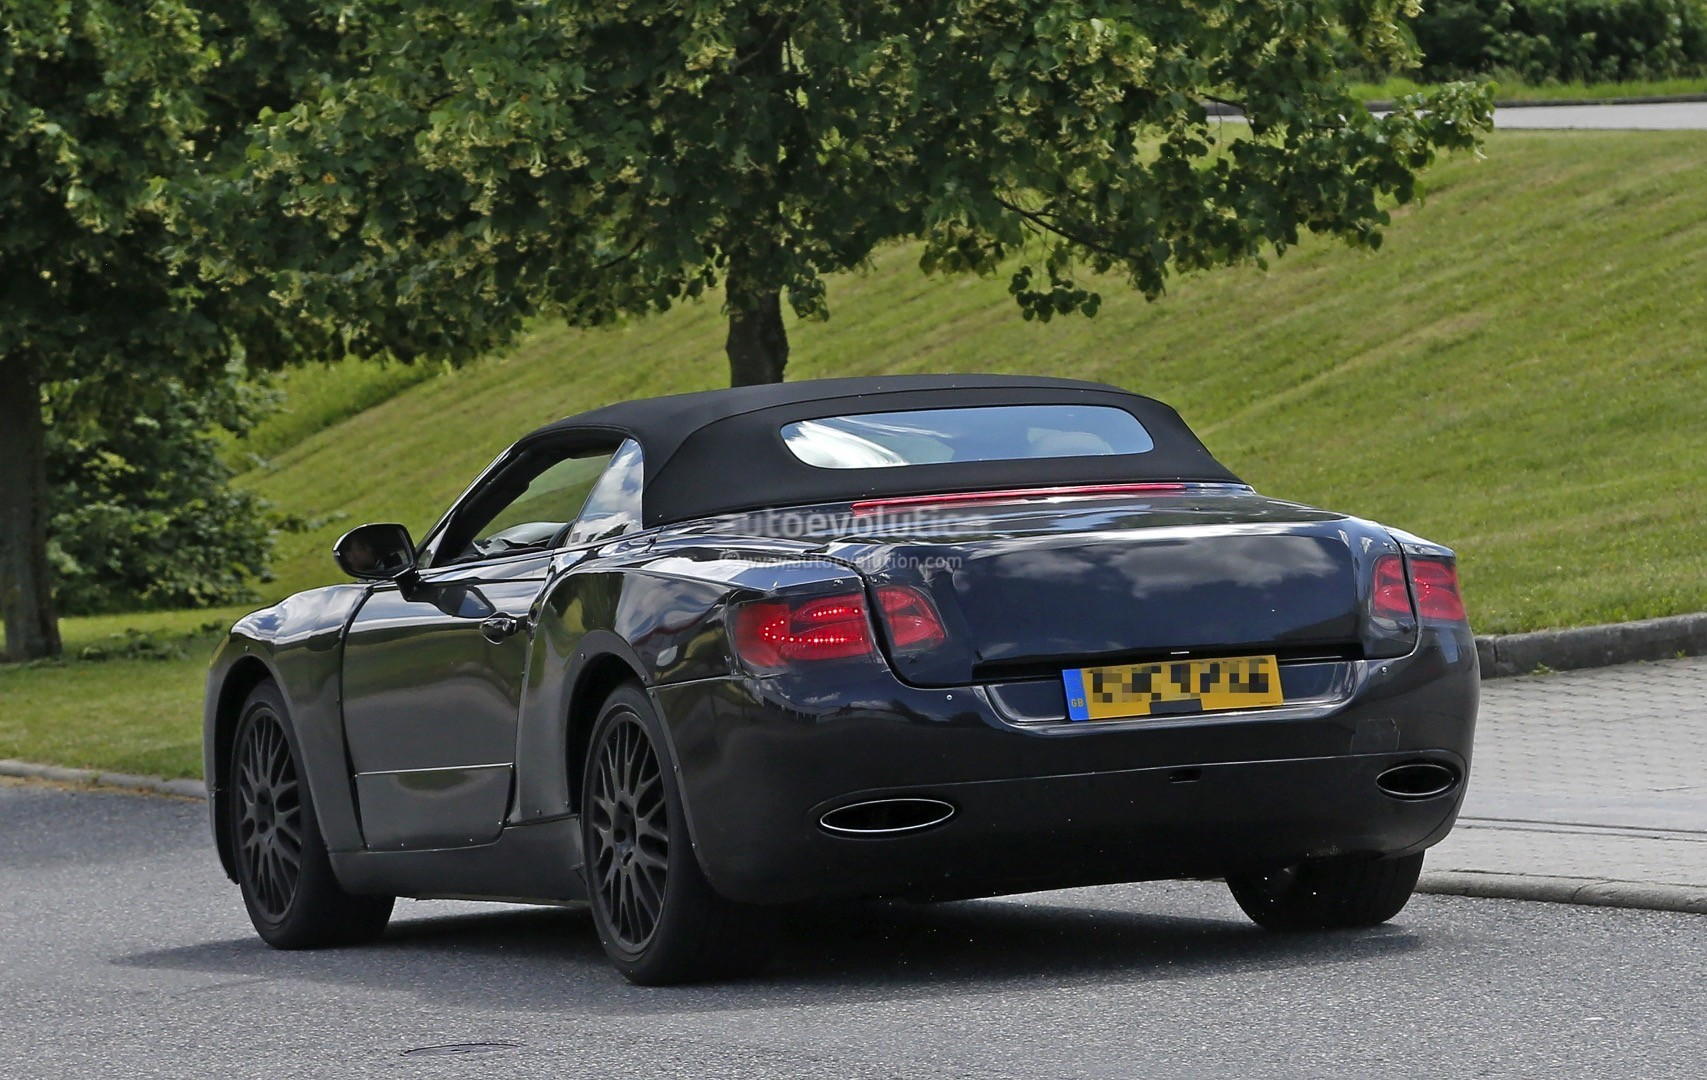 2018 bentley continental gtc says cheese to the camera. Black Bedroom Furniture Sets. Home Design Ideas